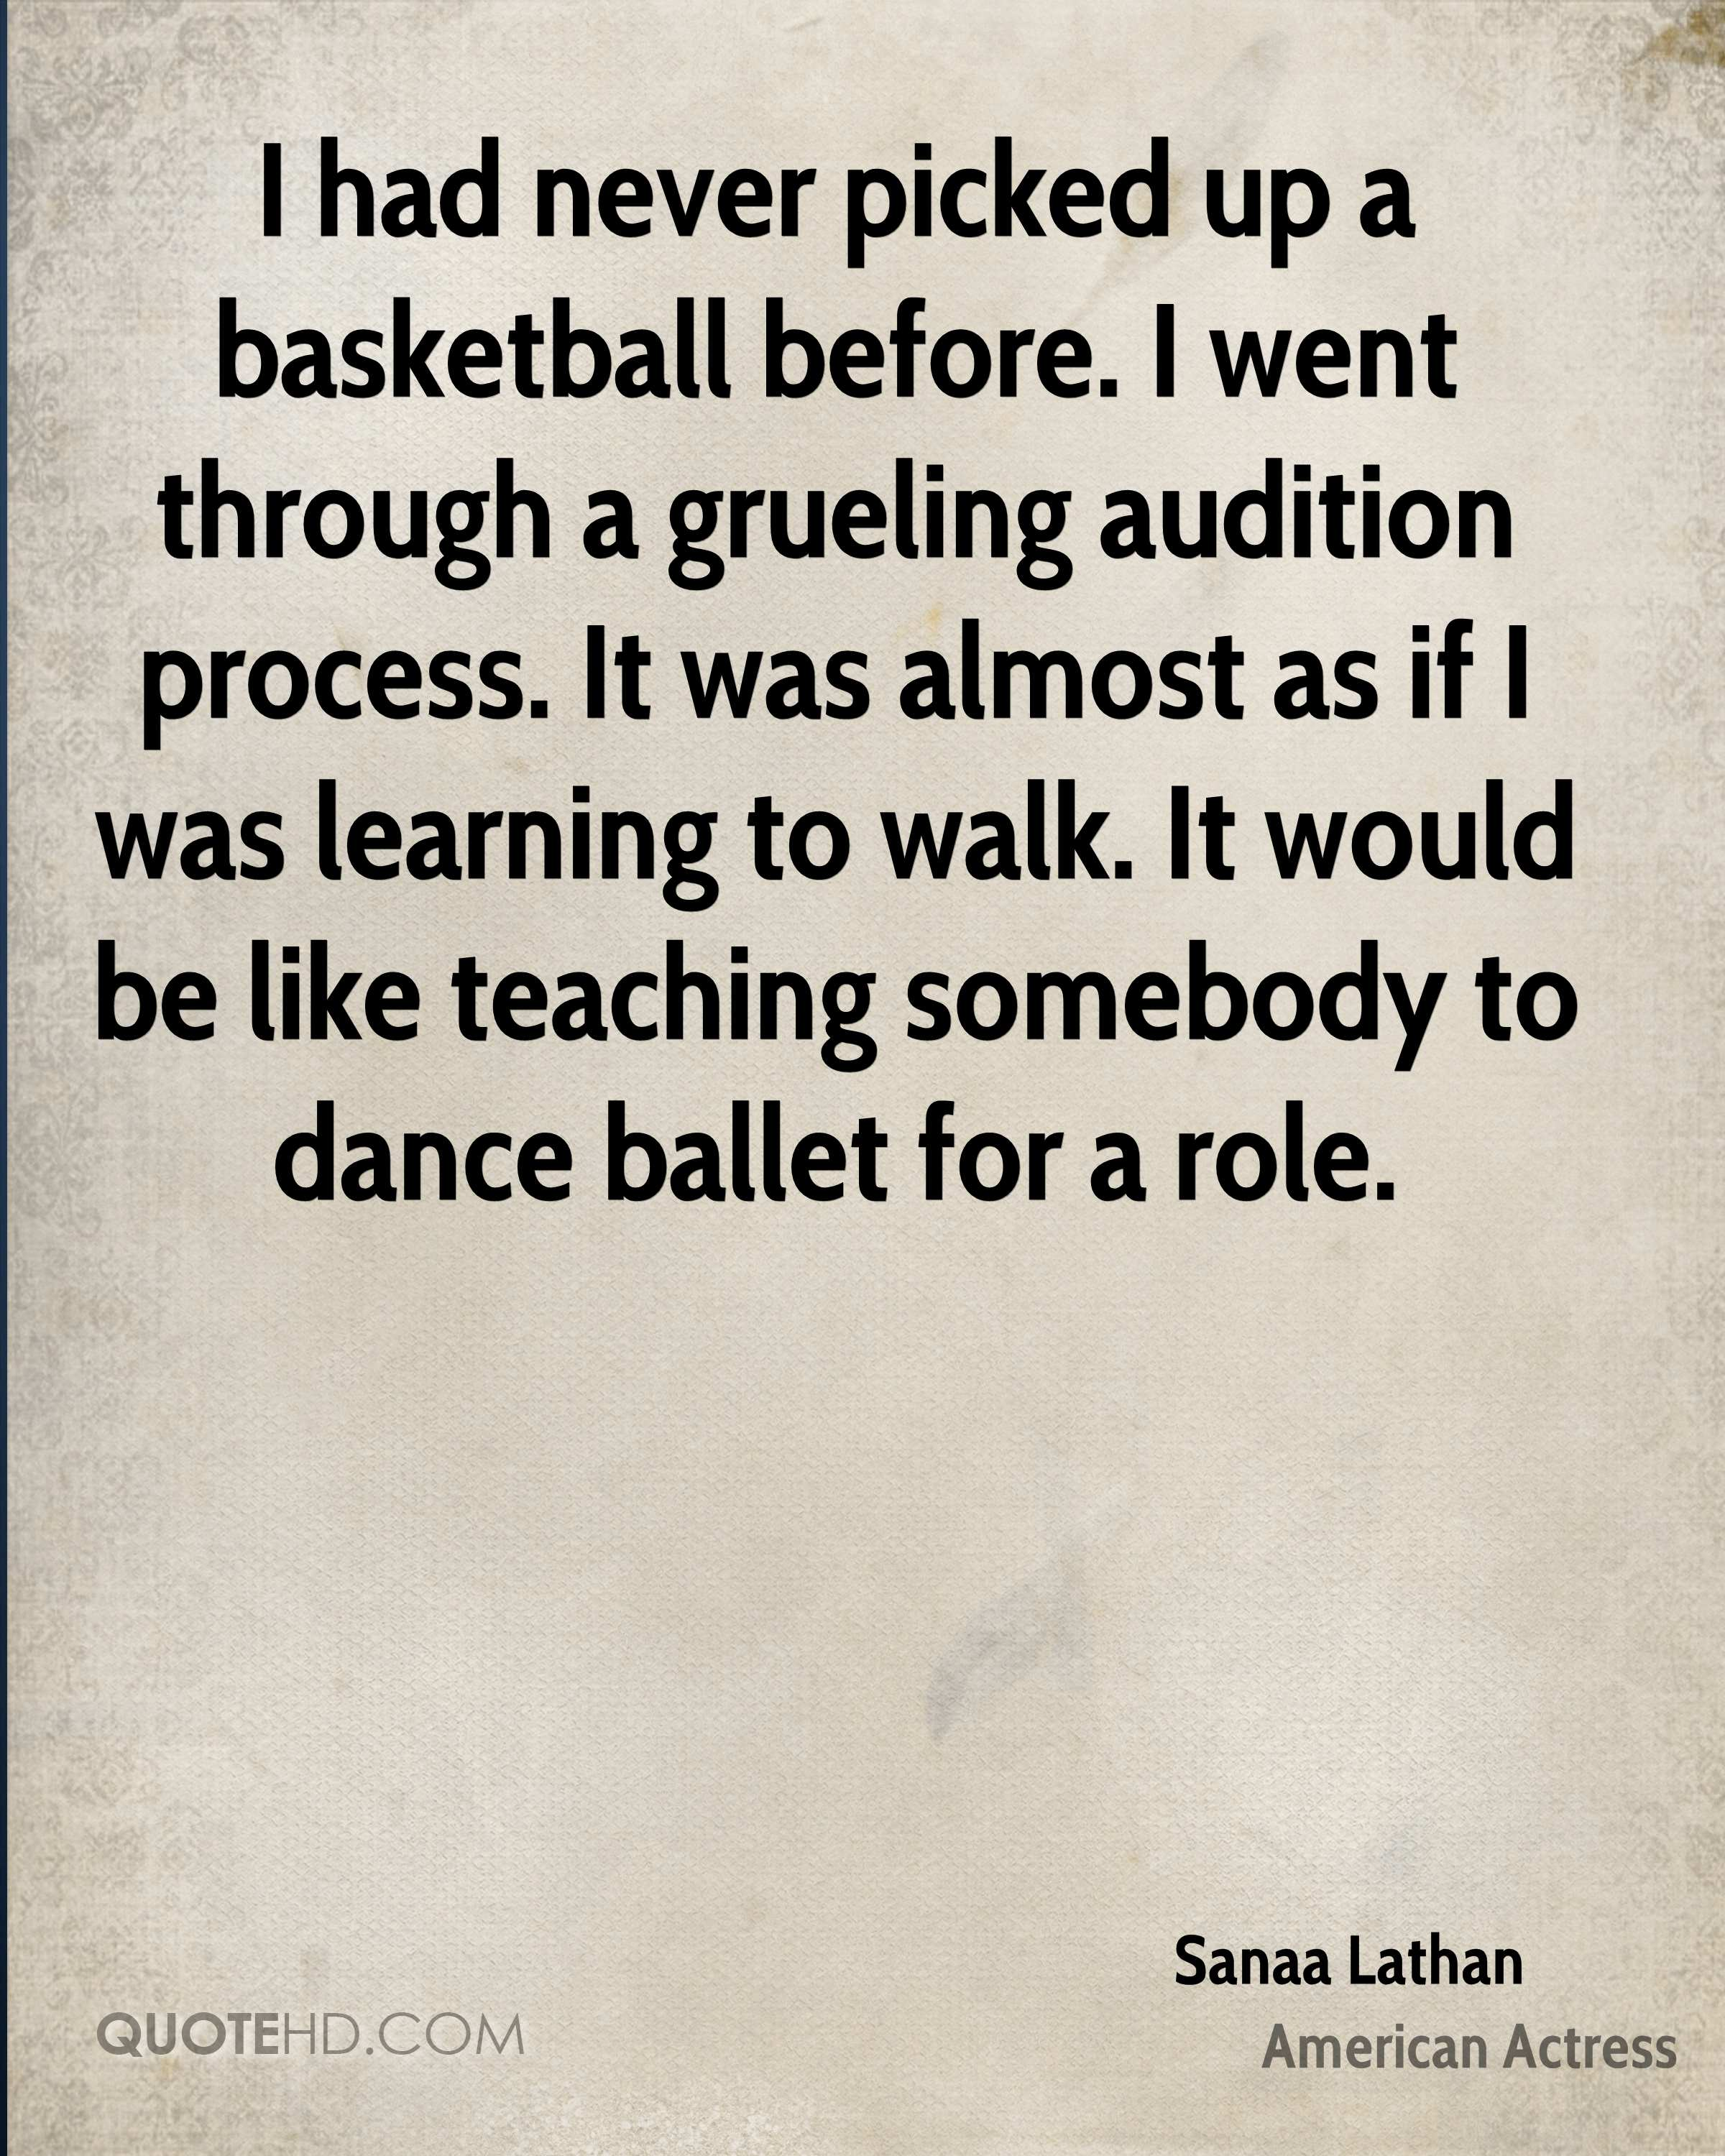 I had never picked up a basketball before. I went through a grueling audition process. It was almost as if I was learning to walk. It would be like teaching somebody to dance ballet for a role.